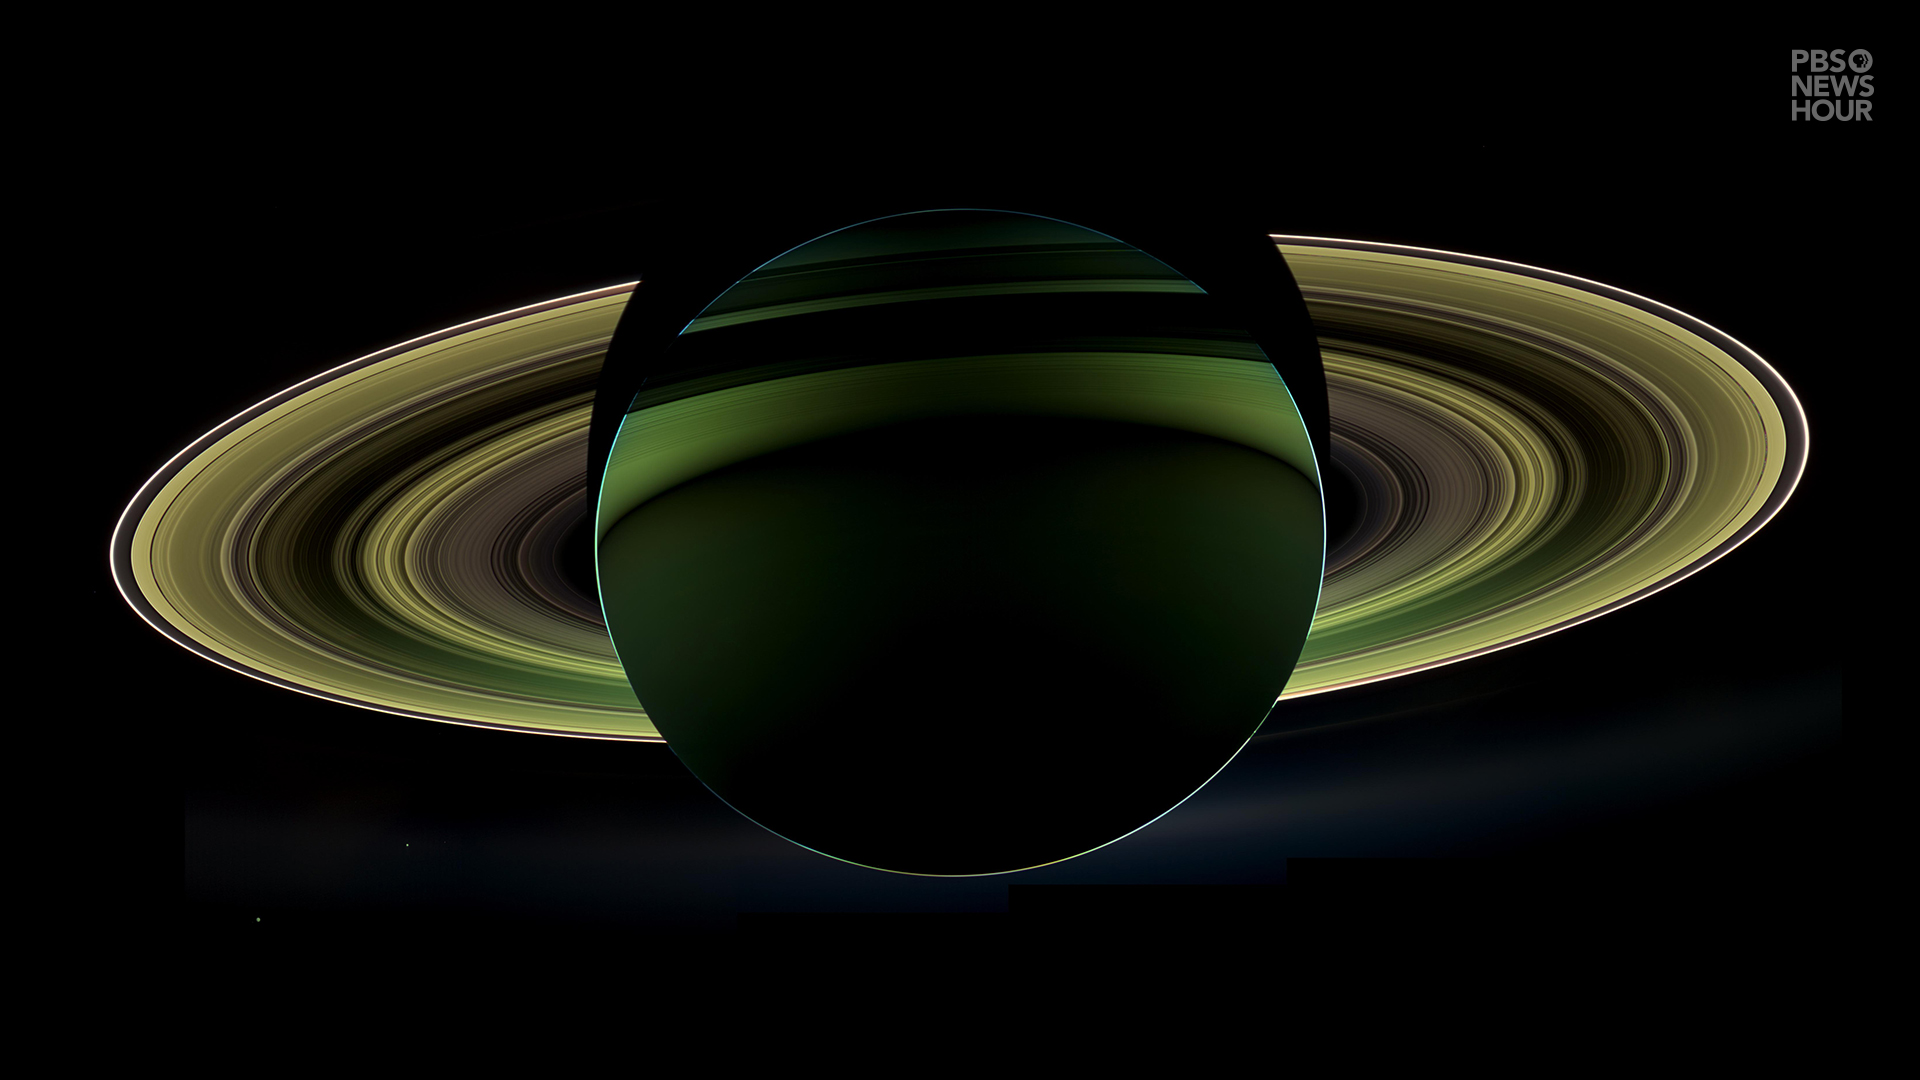 Let Cassini Live Forever With These Desktop And Smartphone Wallpapers Pbs Newshour